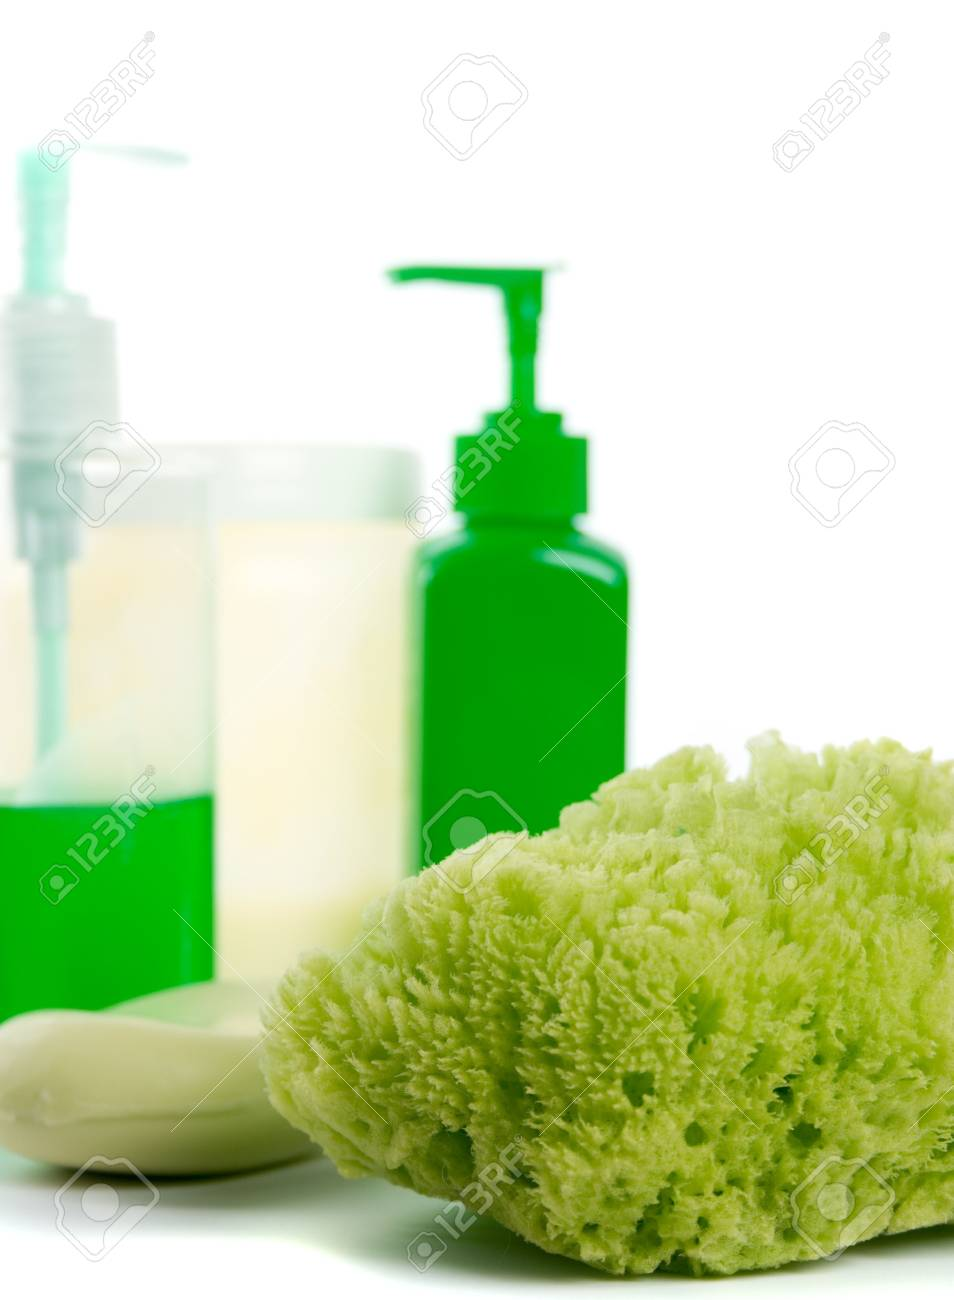 natural sponge, soap and body lotion on white background Stock Photo - 4196883